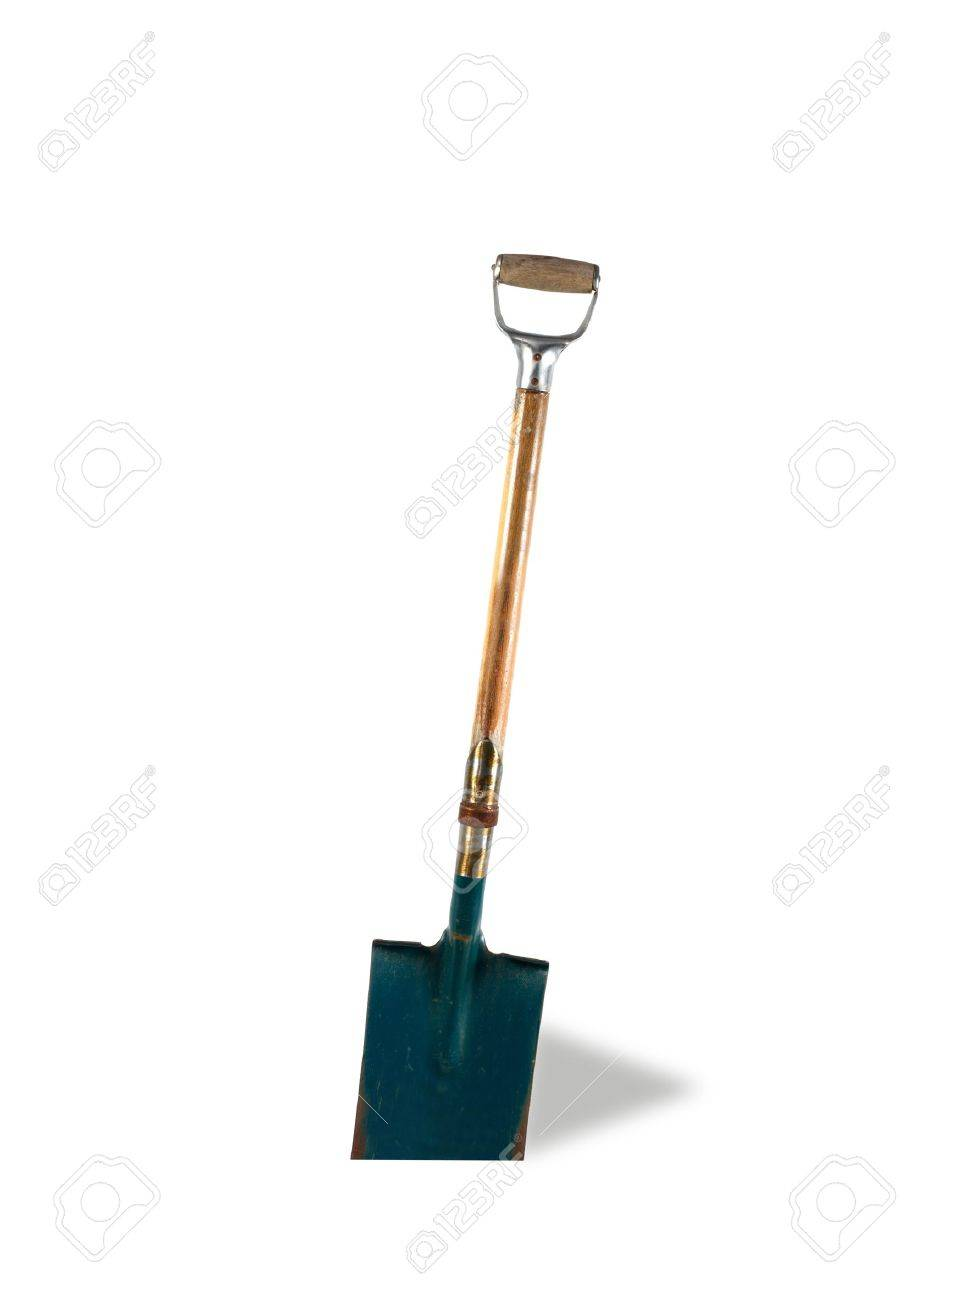 A garden shovel isolated against a white background Stock Photo - 11932671